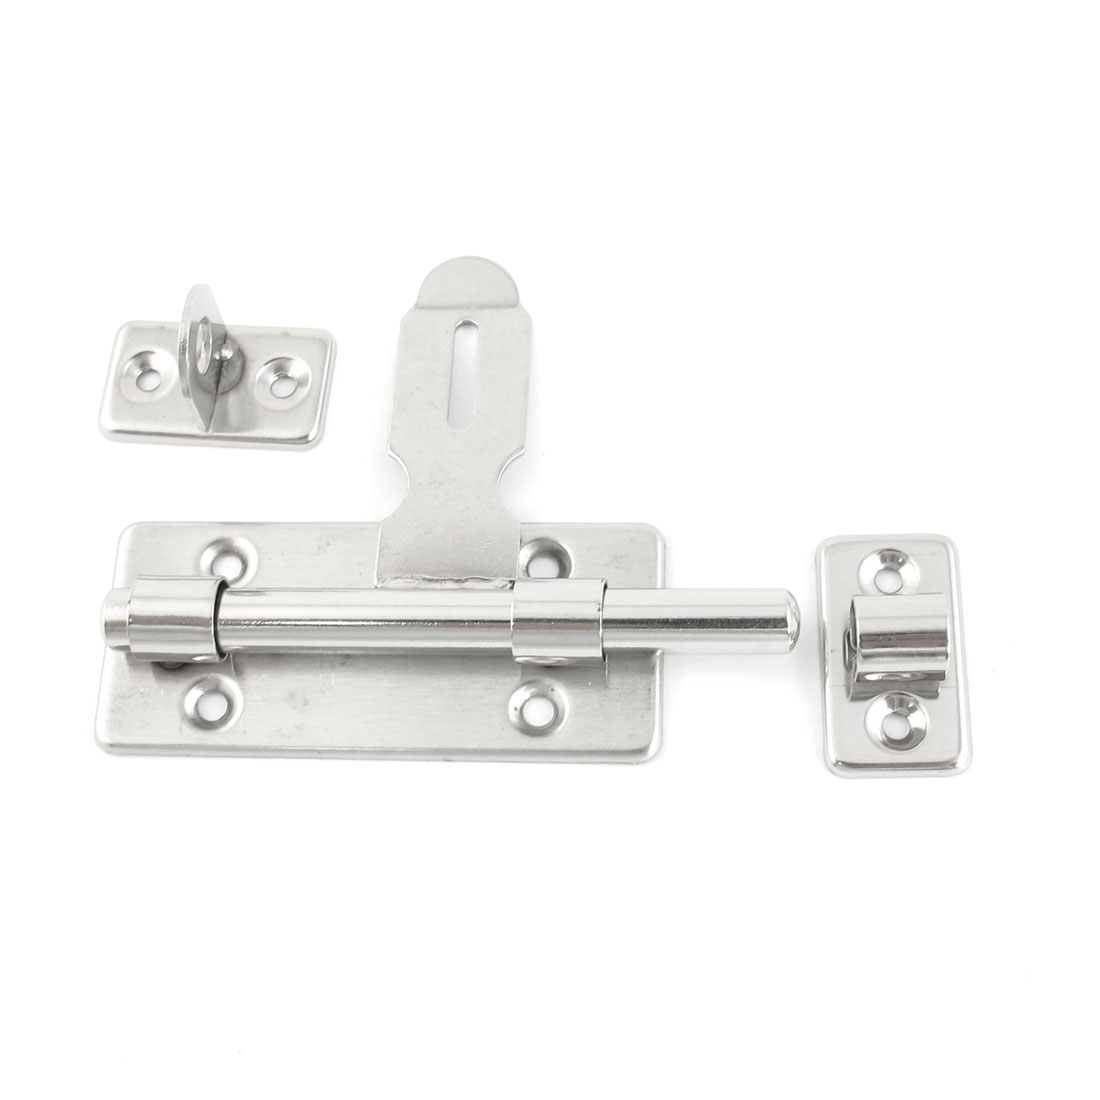 Home Office Cabinet Gate Door Latch Silver Tone Barrel Bolt 4.1""